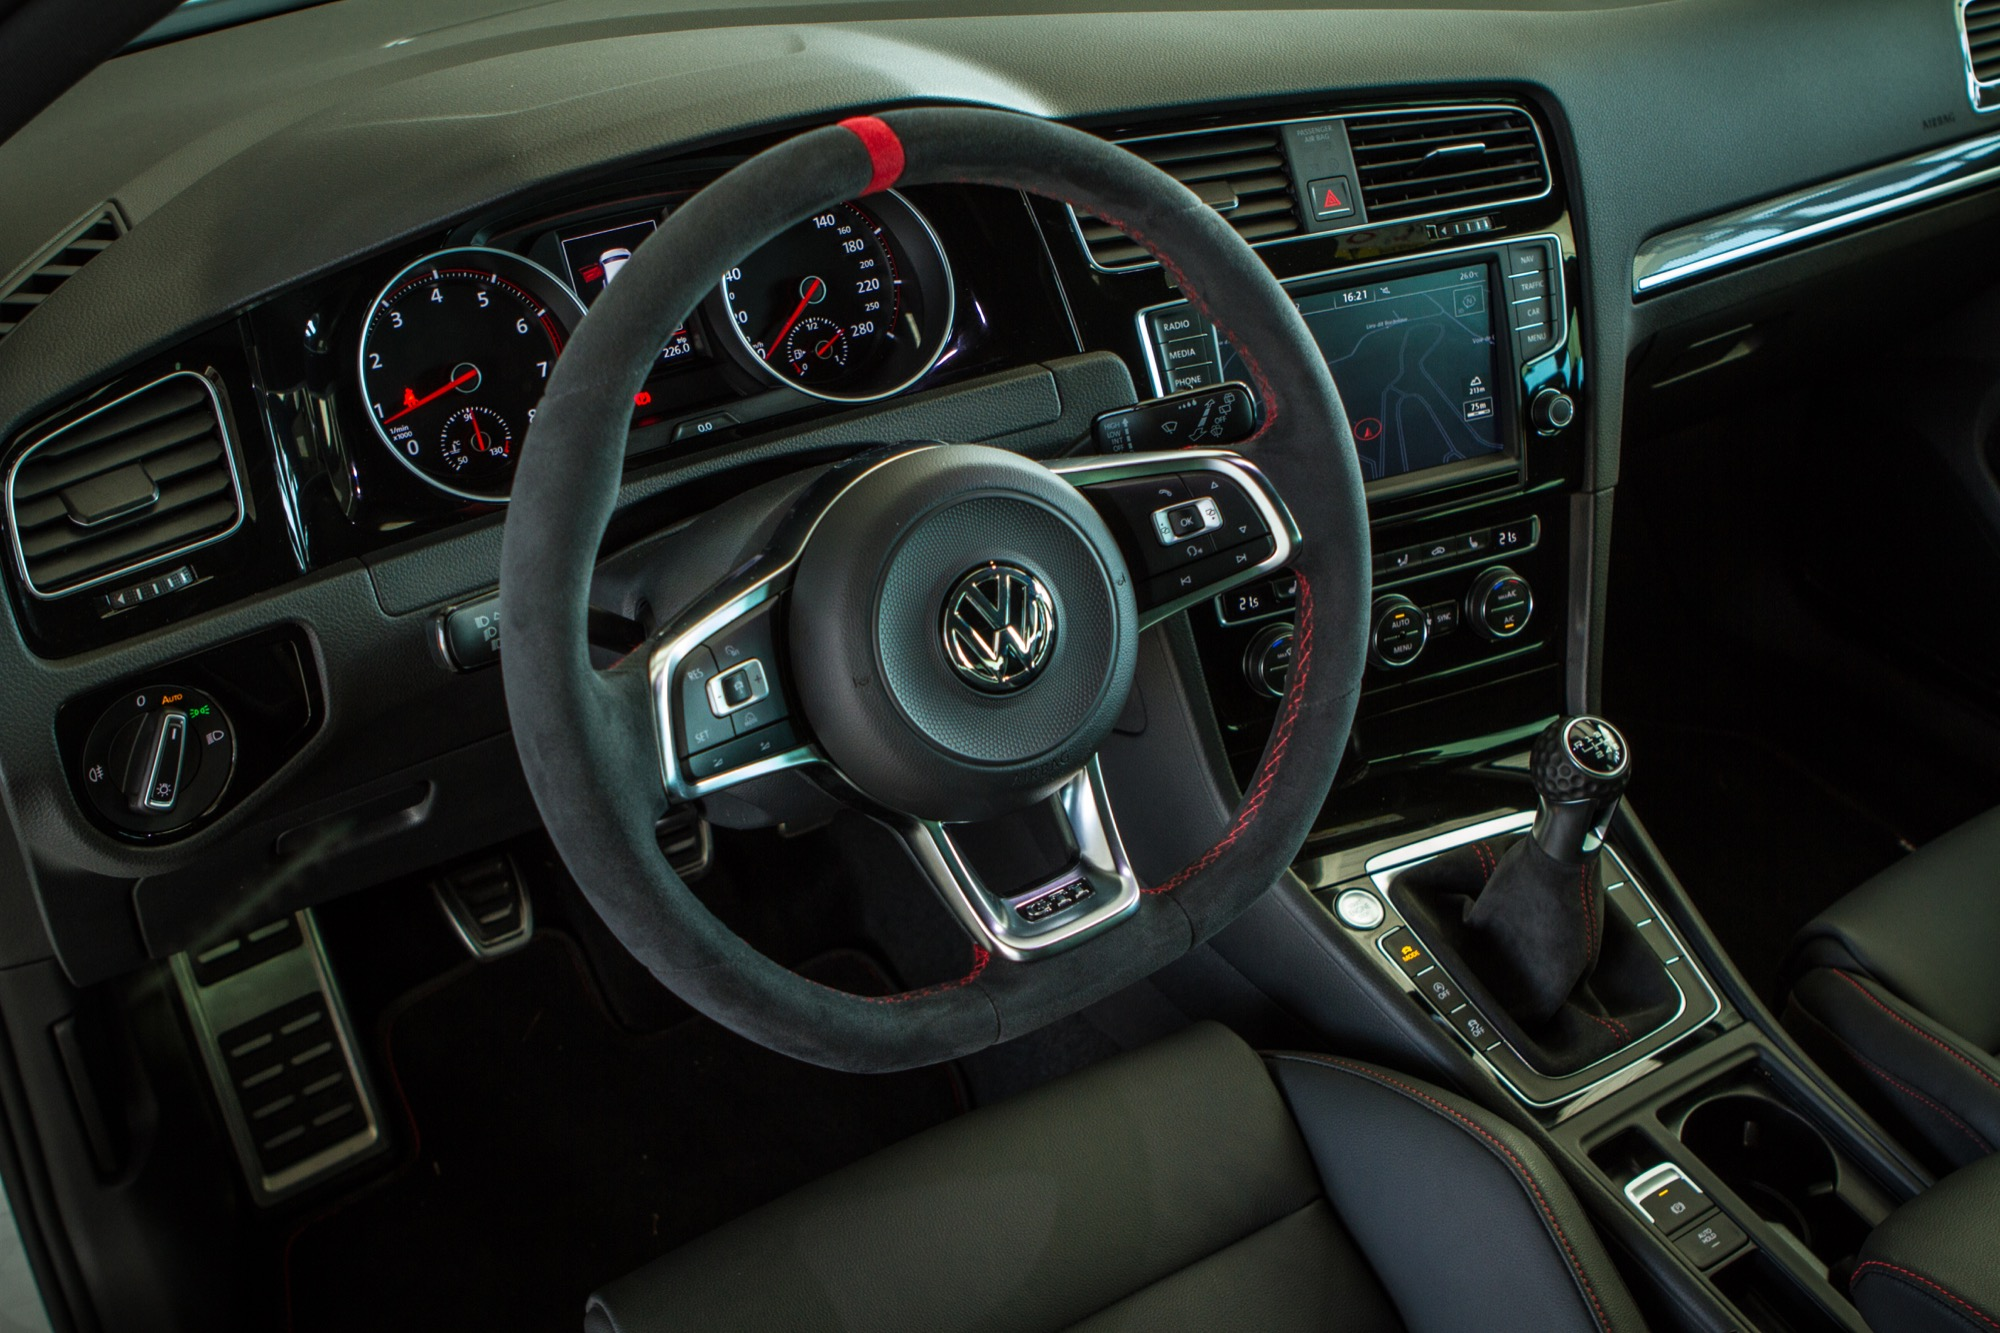 Essai volkswagen golf gti clubsport interieur 4 le blog for Interieur golf 4